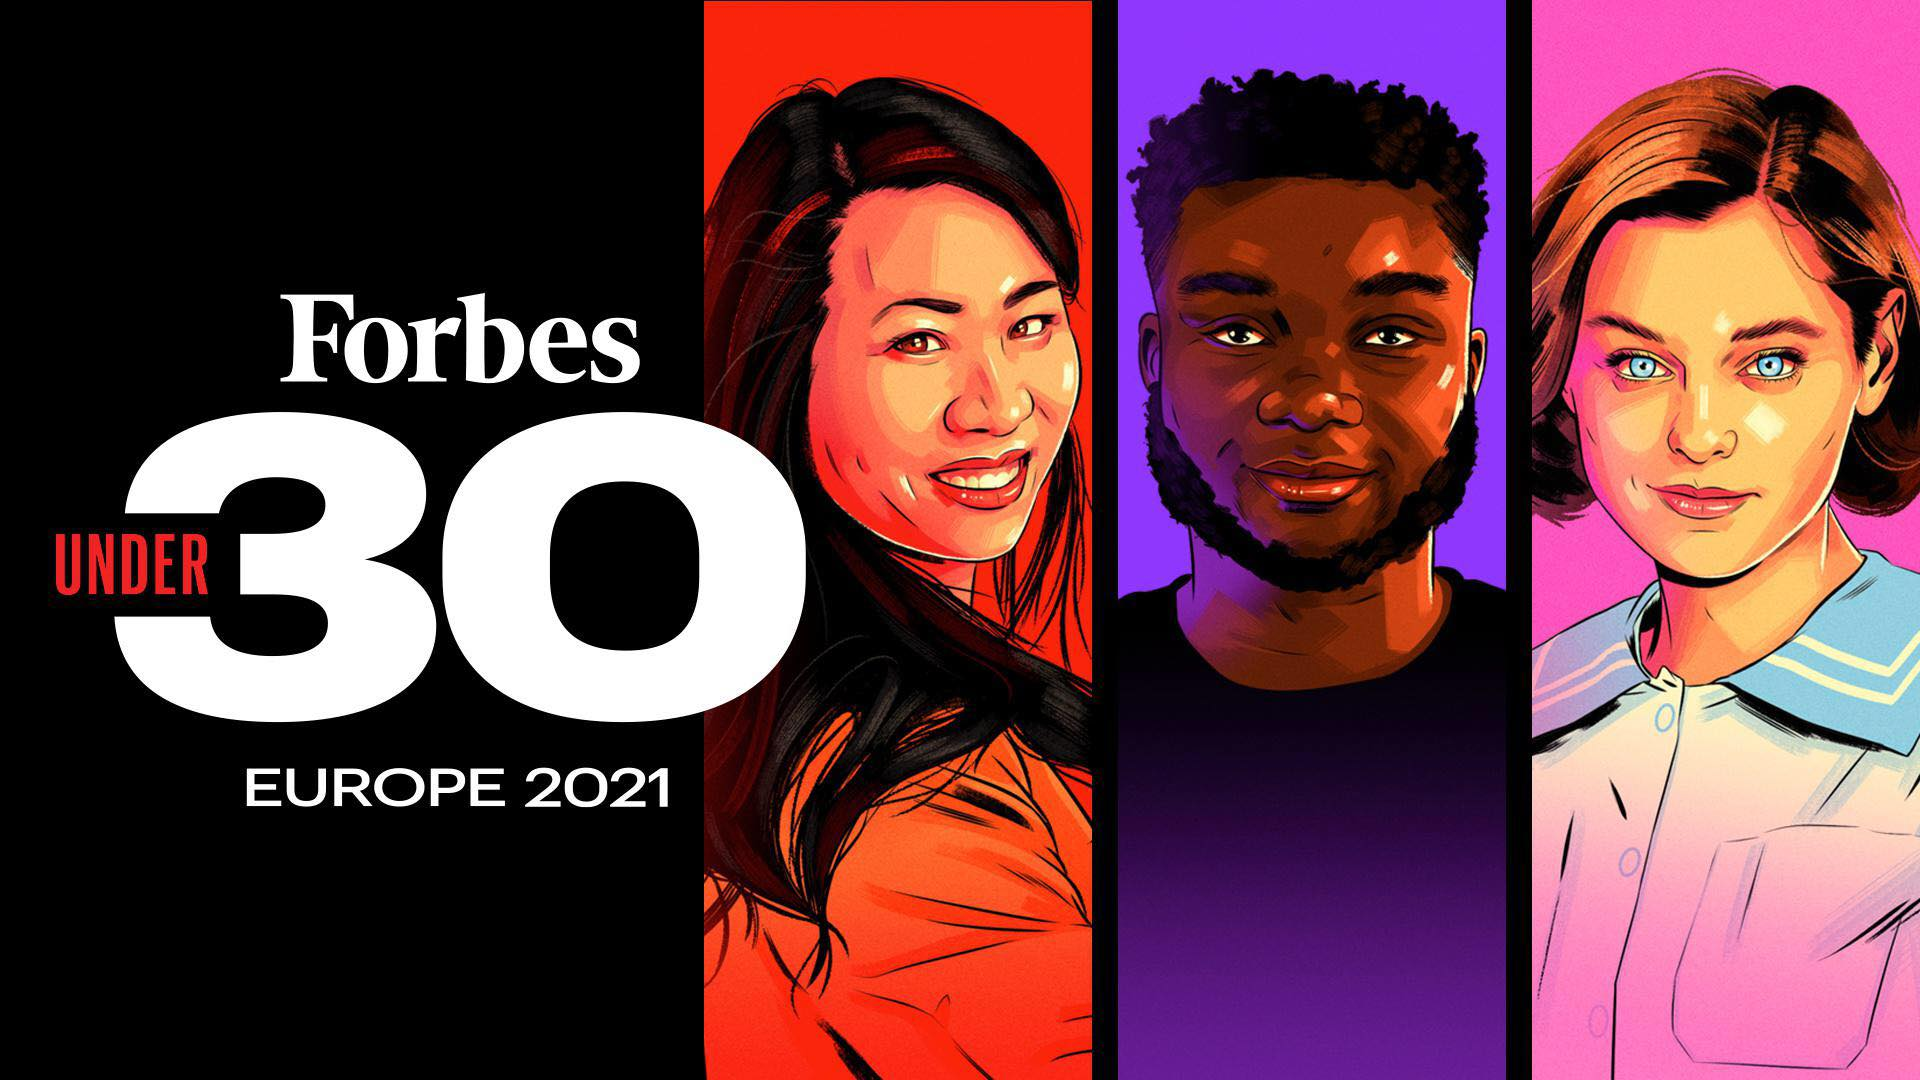 Perkz and ZywOo listed on Forbes 30 under 30